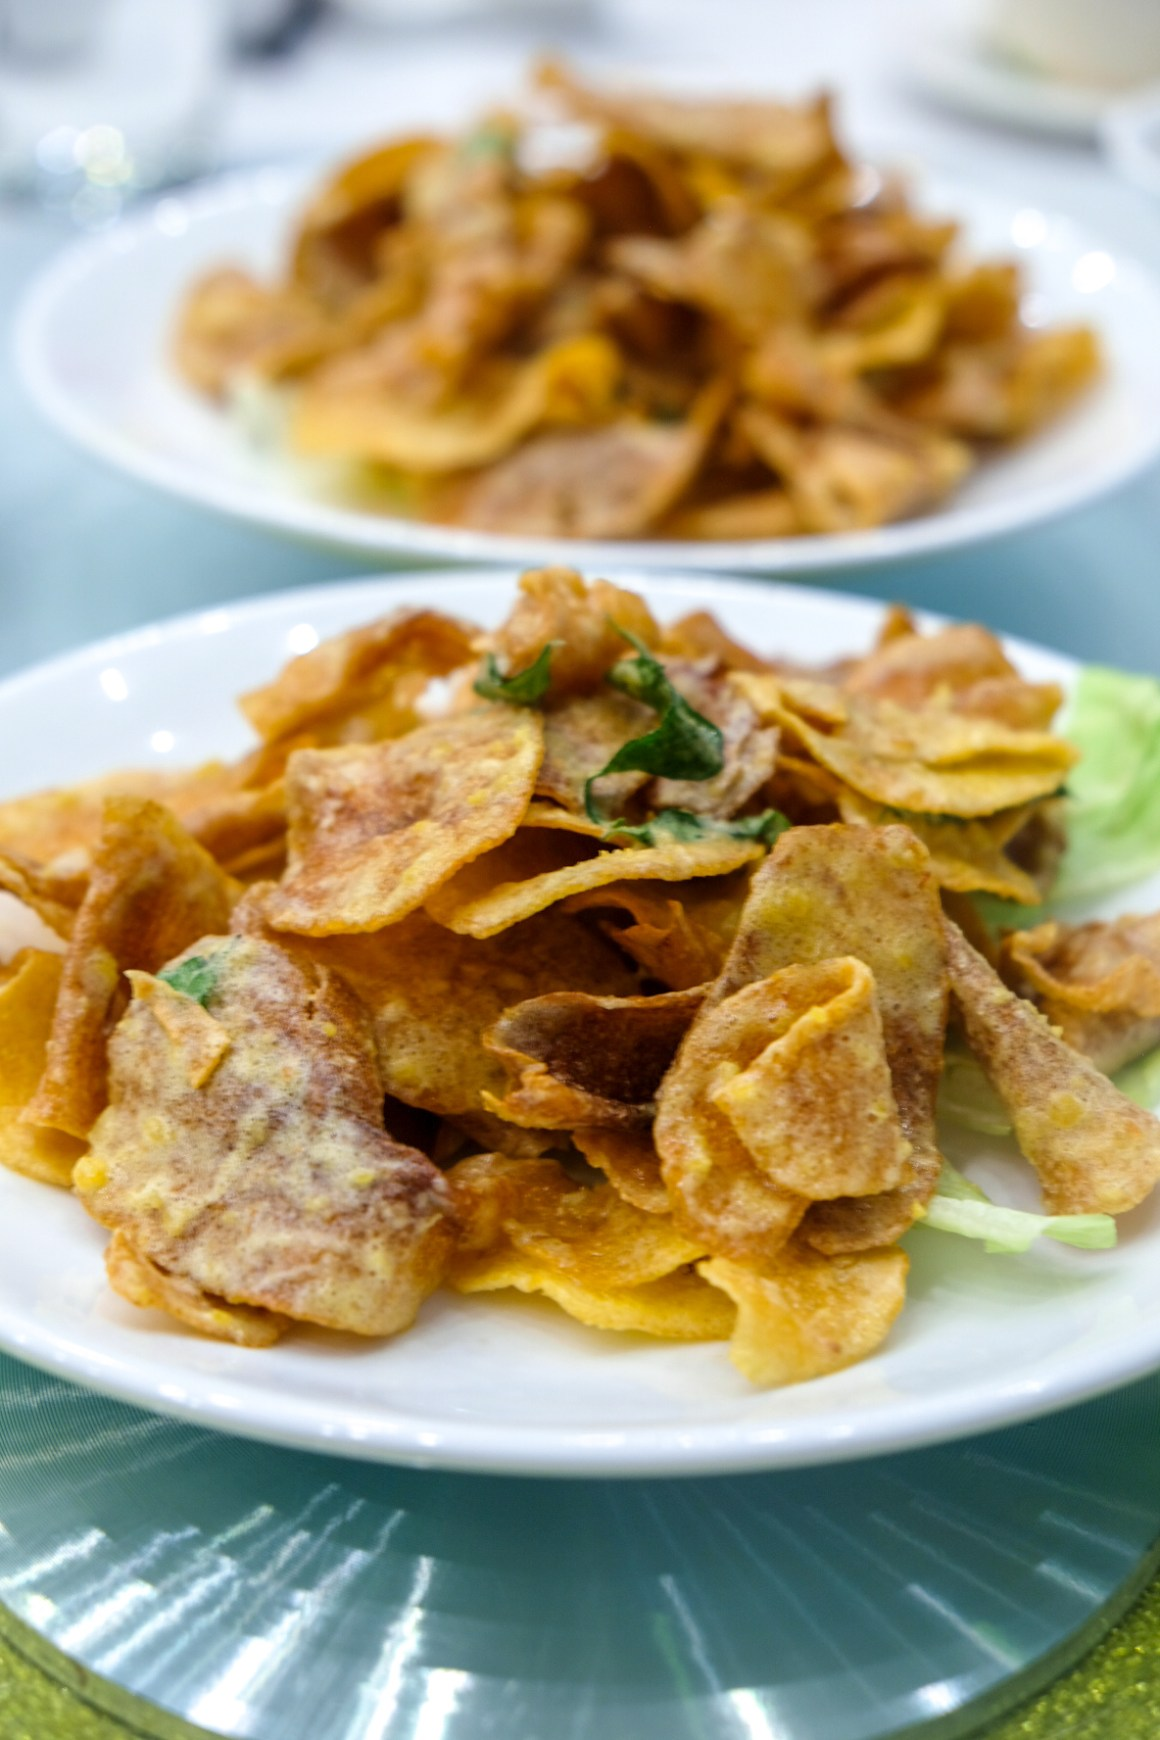 Crispy Fried Potato Slices with Salted Egg Yolk ($12)